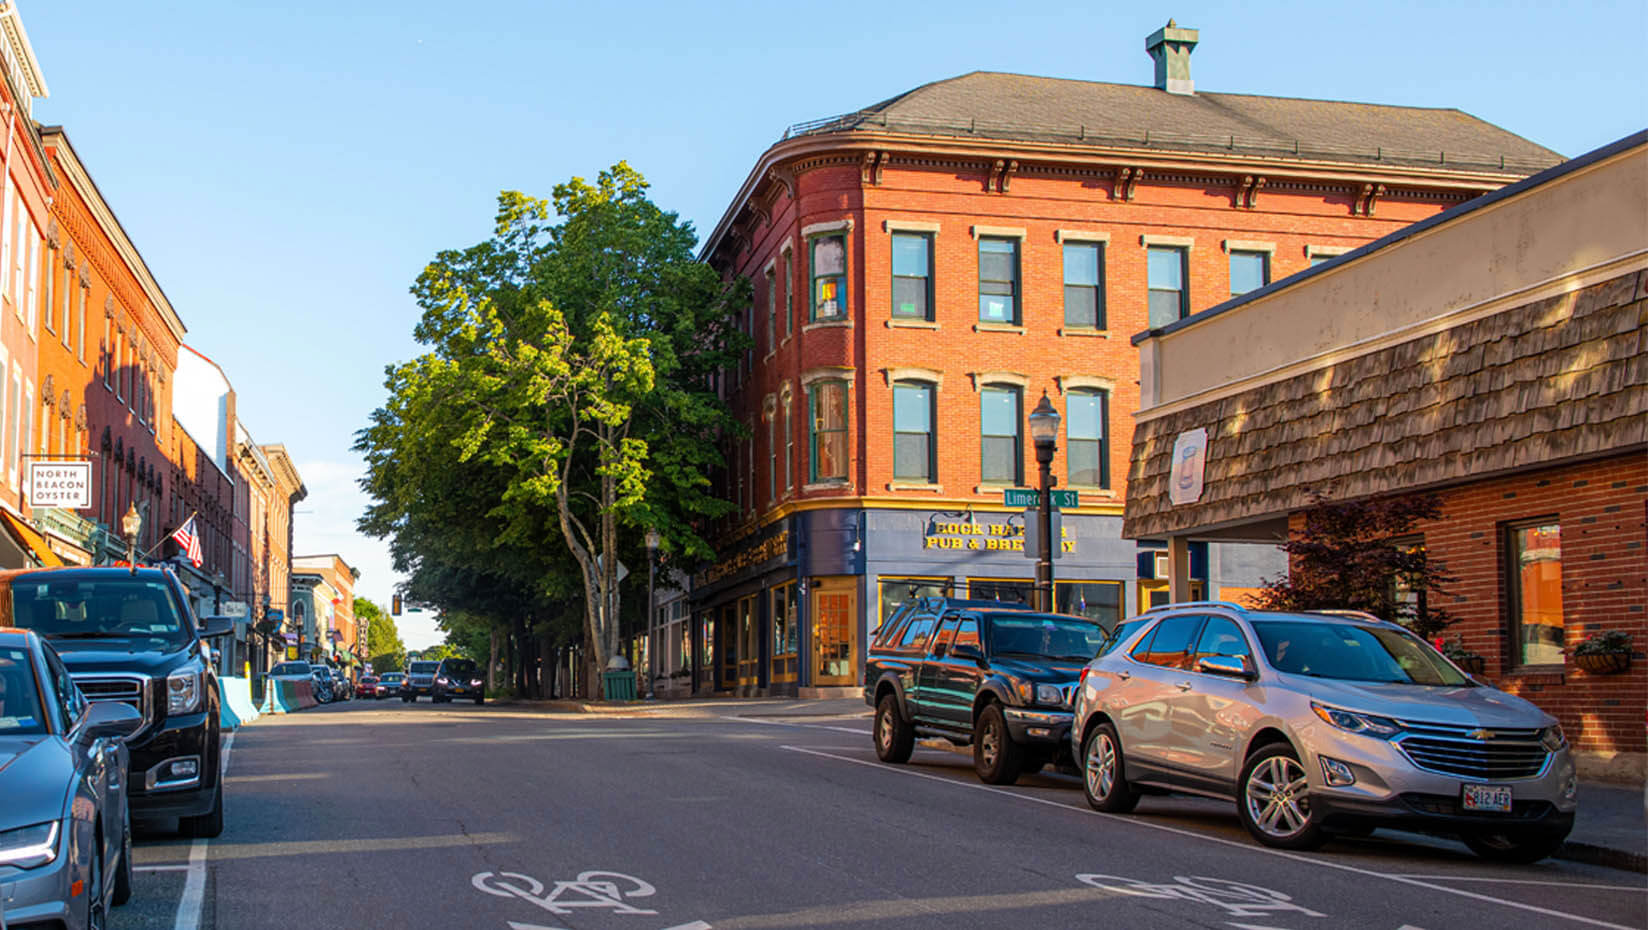 A photo of a street lined with businesses in Maine